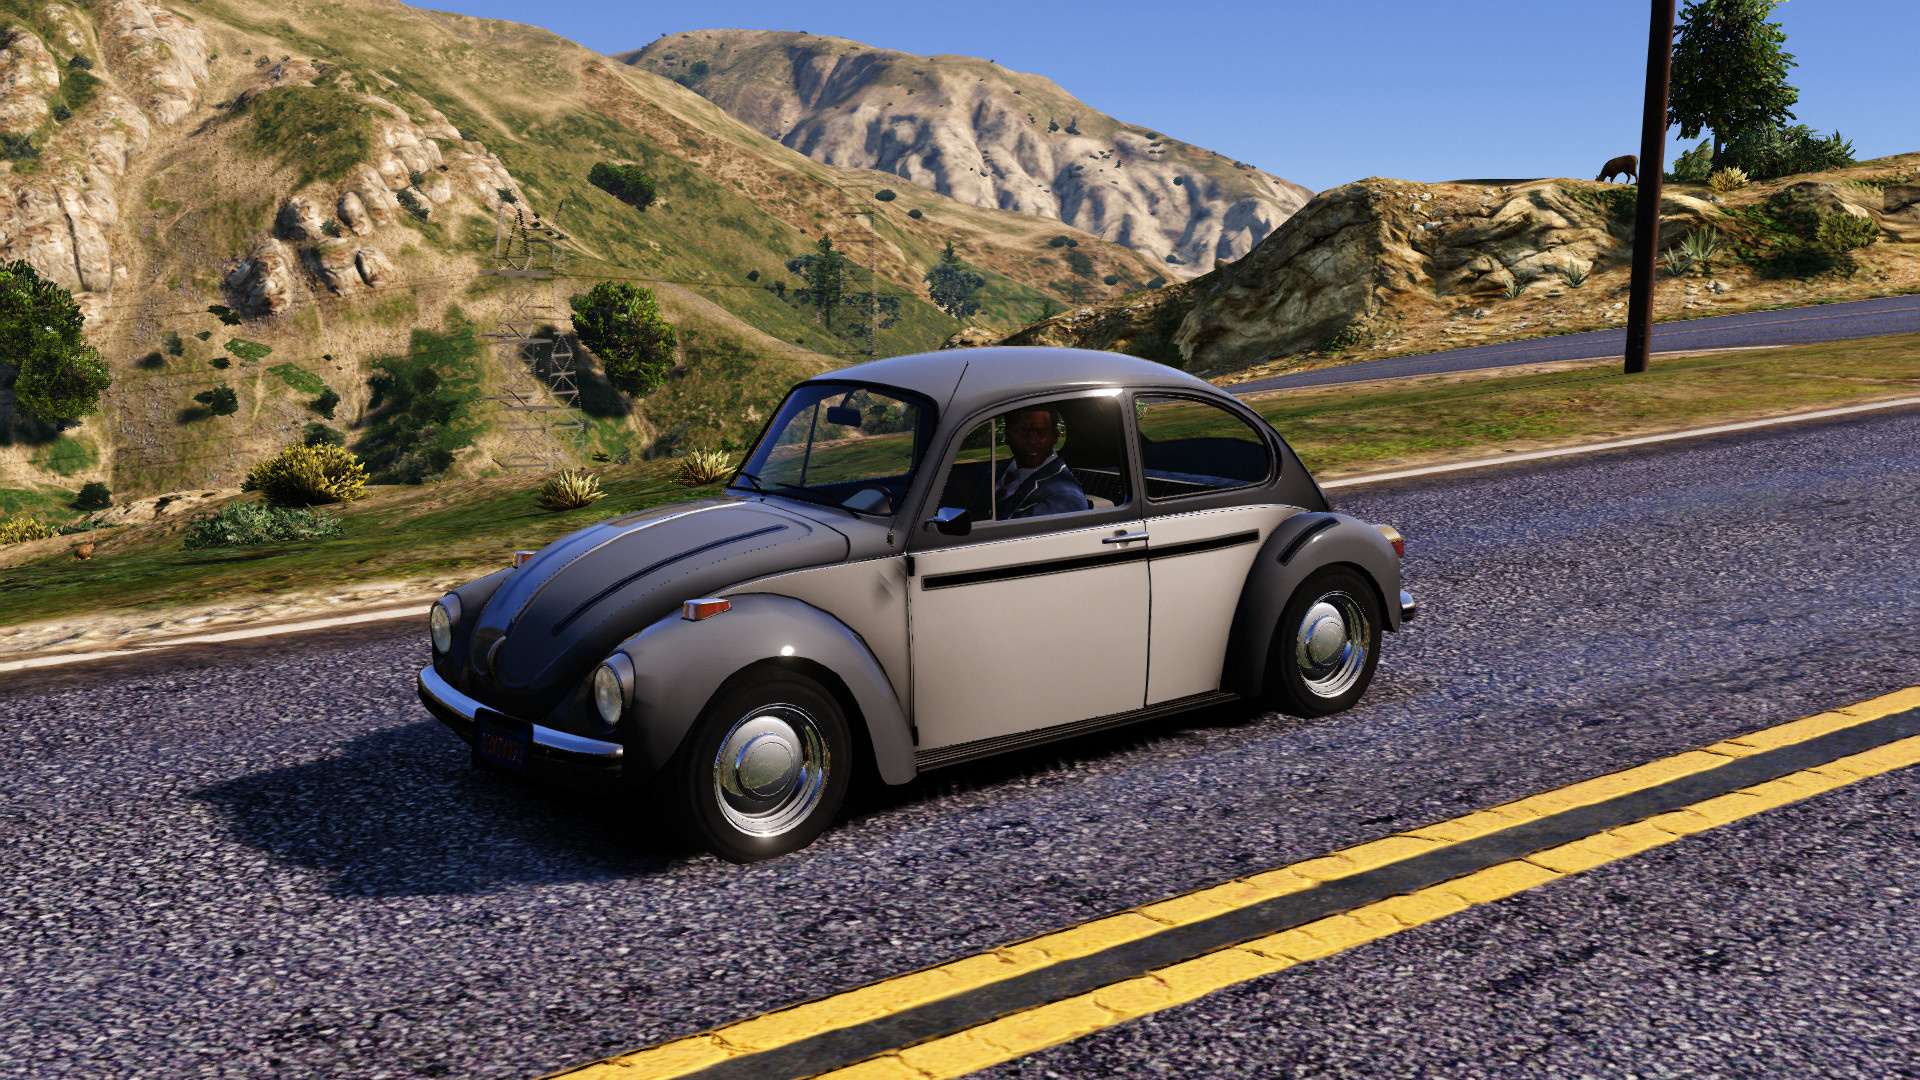 Volkswagen beetle 1974 add on template gta5 mods 947e2a gta5 2017 04 14 13 40 52 publicscrutiny Image collections